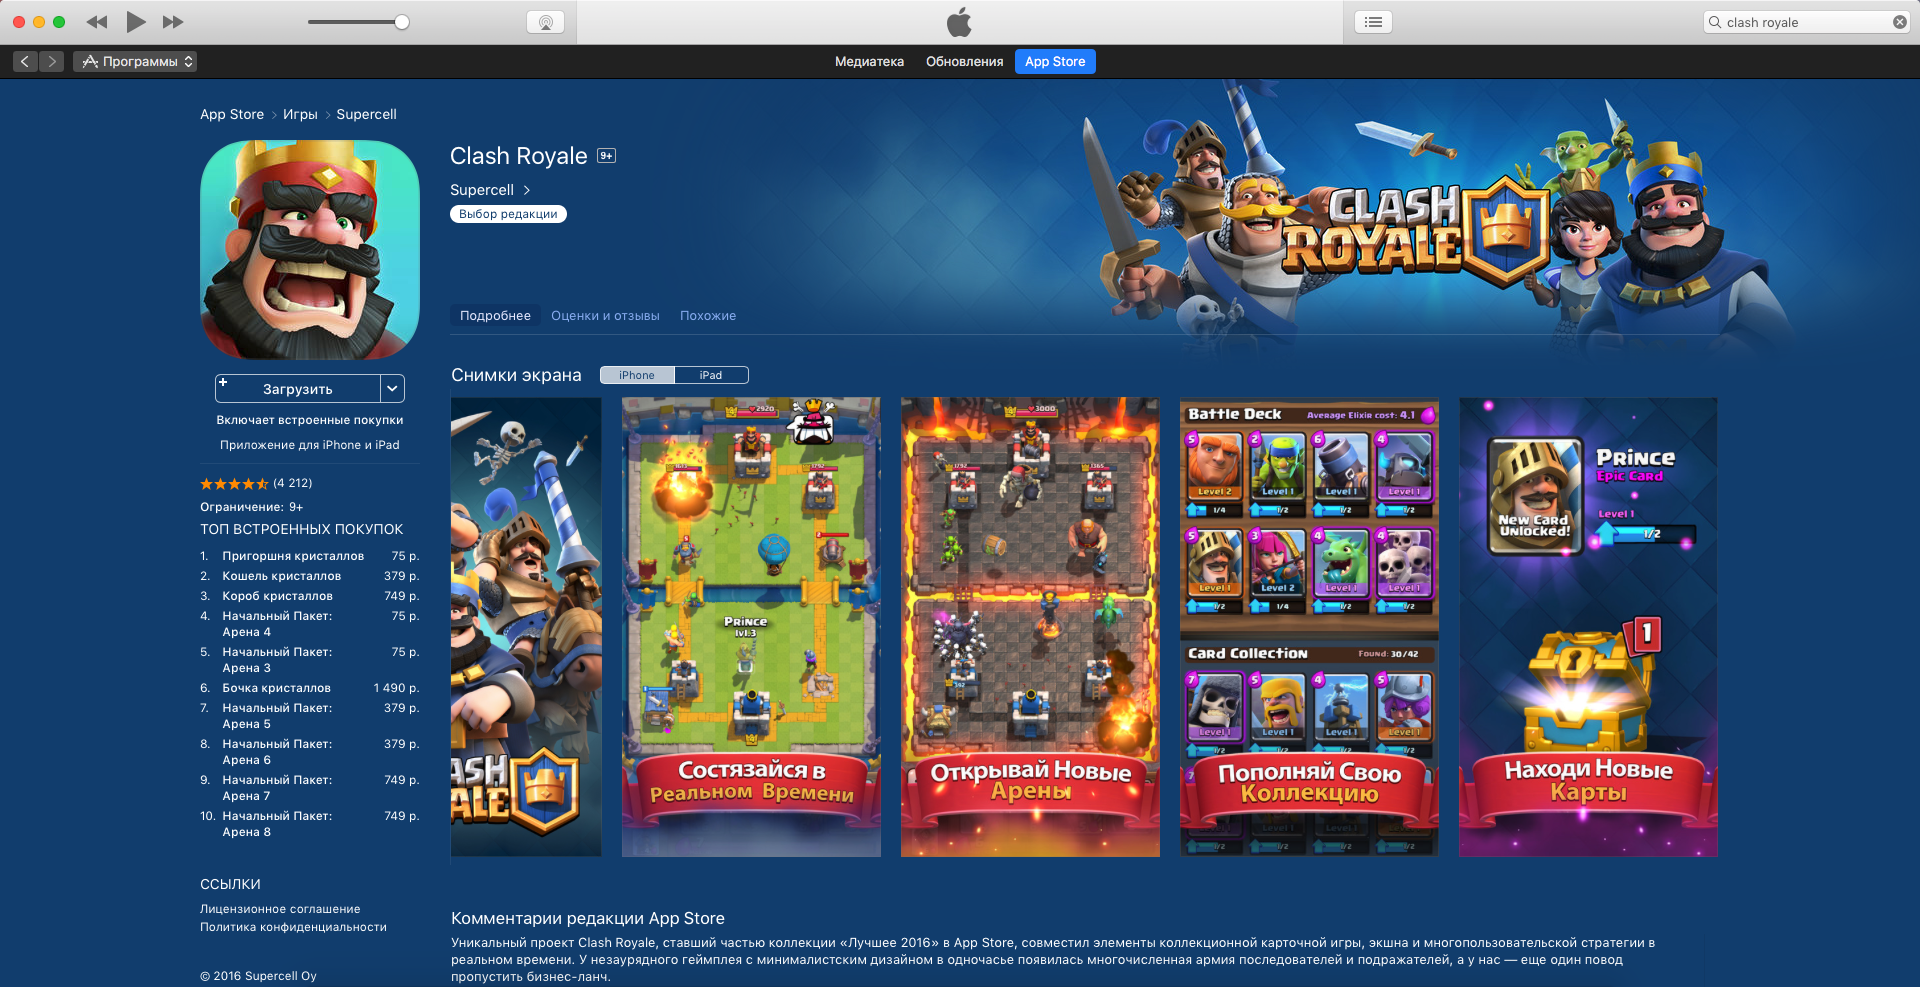 App Store Mini Pekka Epic